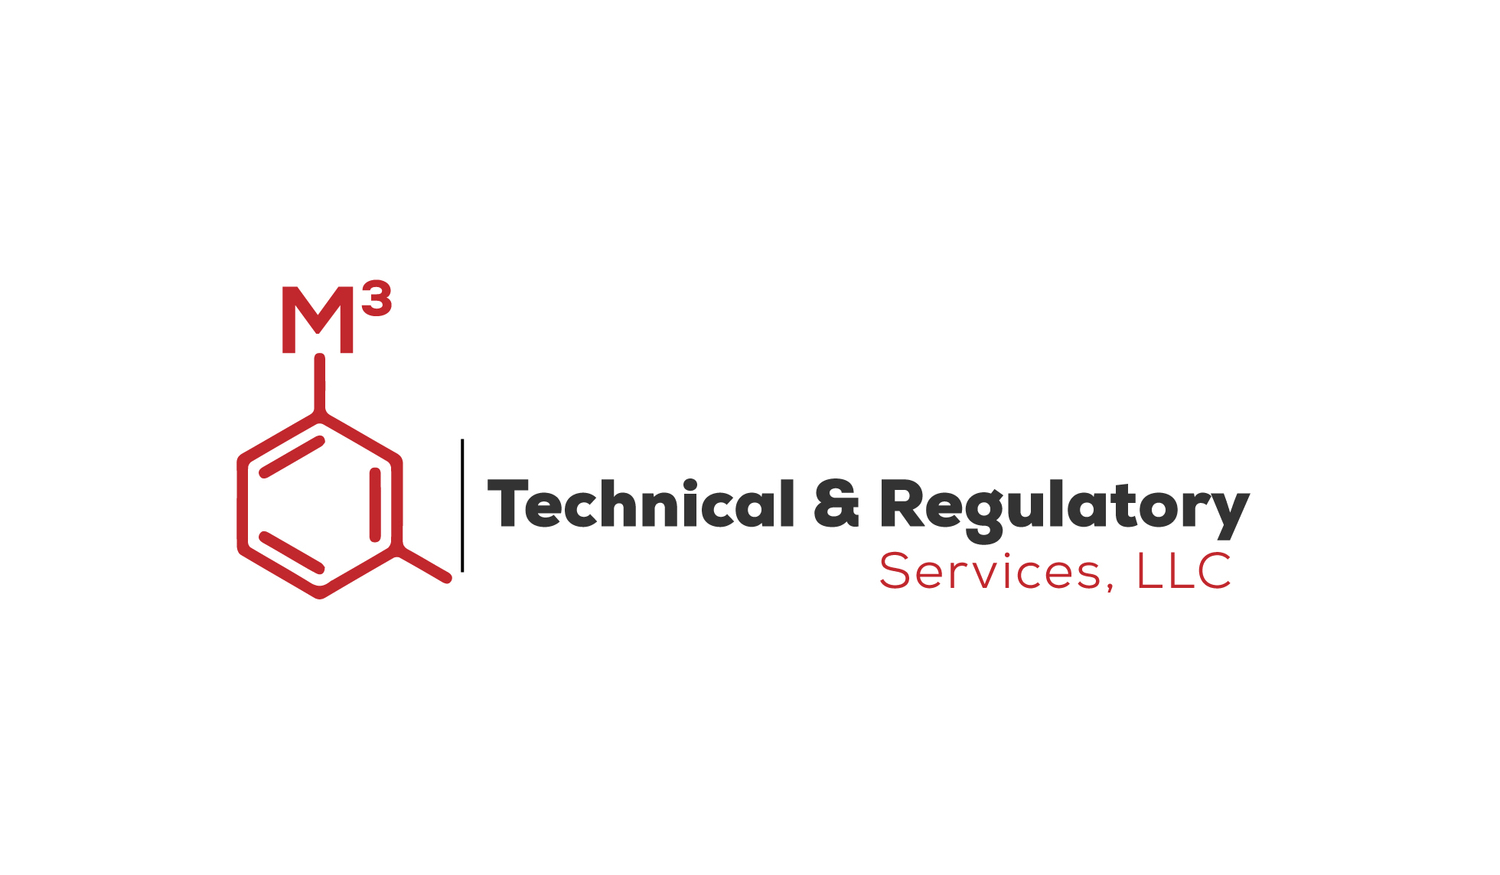 M³ Technical & Regulatory Services, LLC